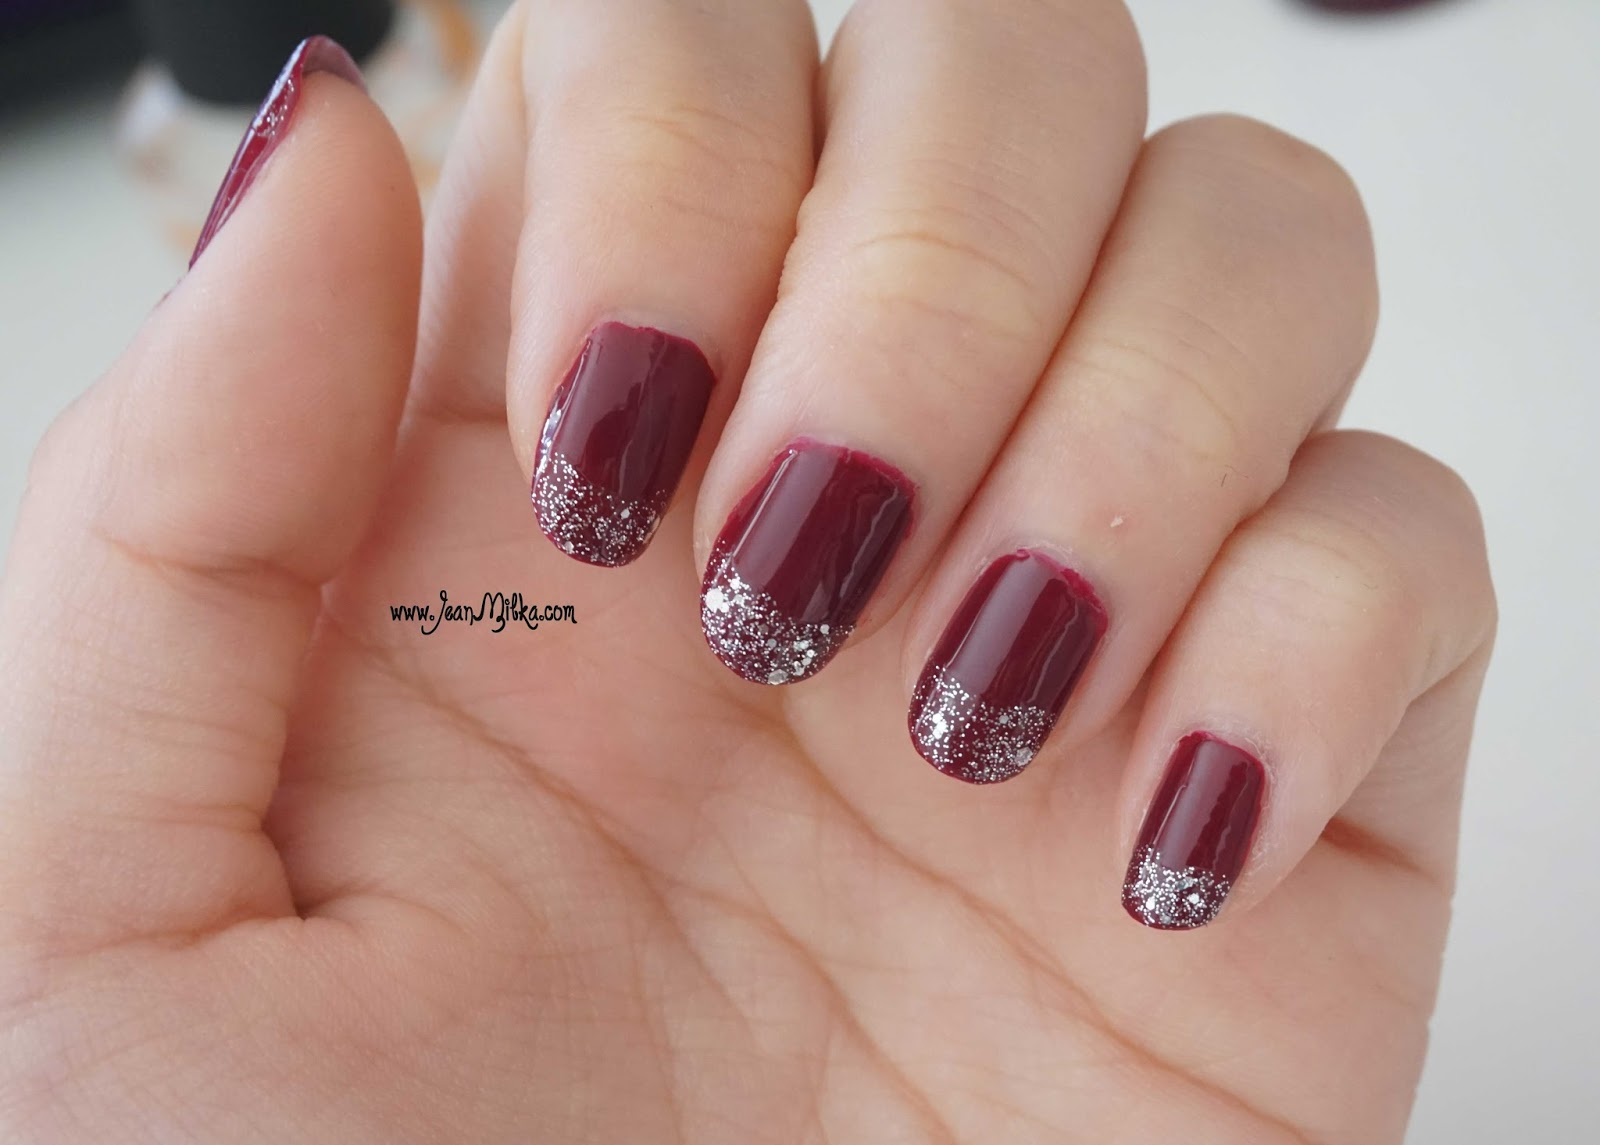 etude house play nail art glamour wine